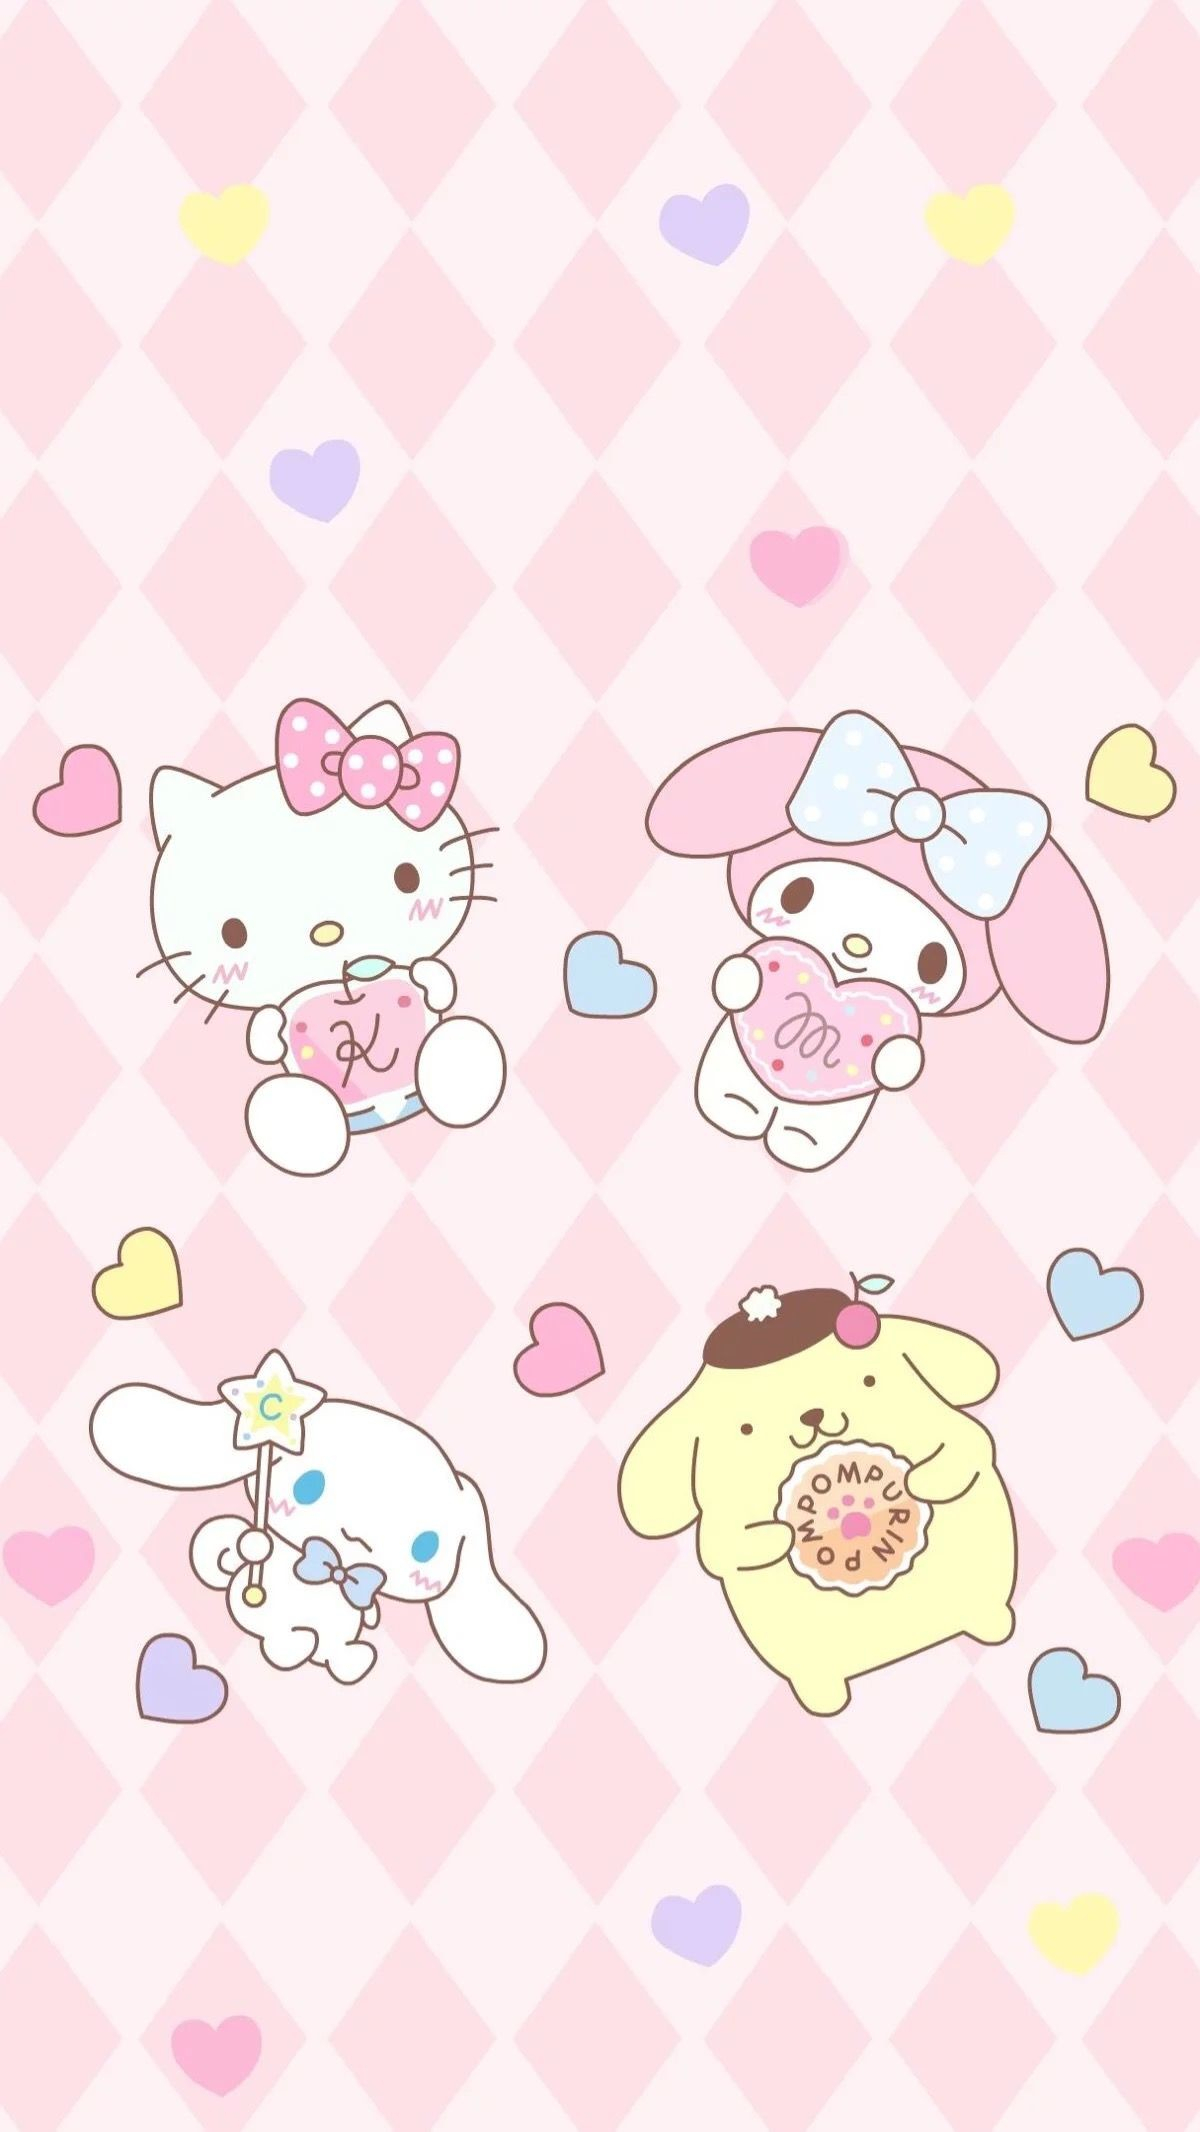 89+ kawaii phone wallpapers on wallpaperplay